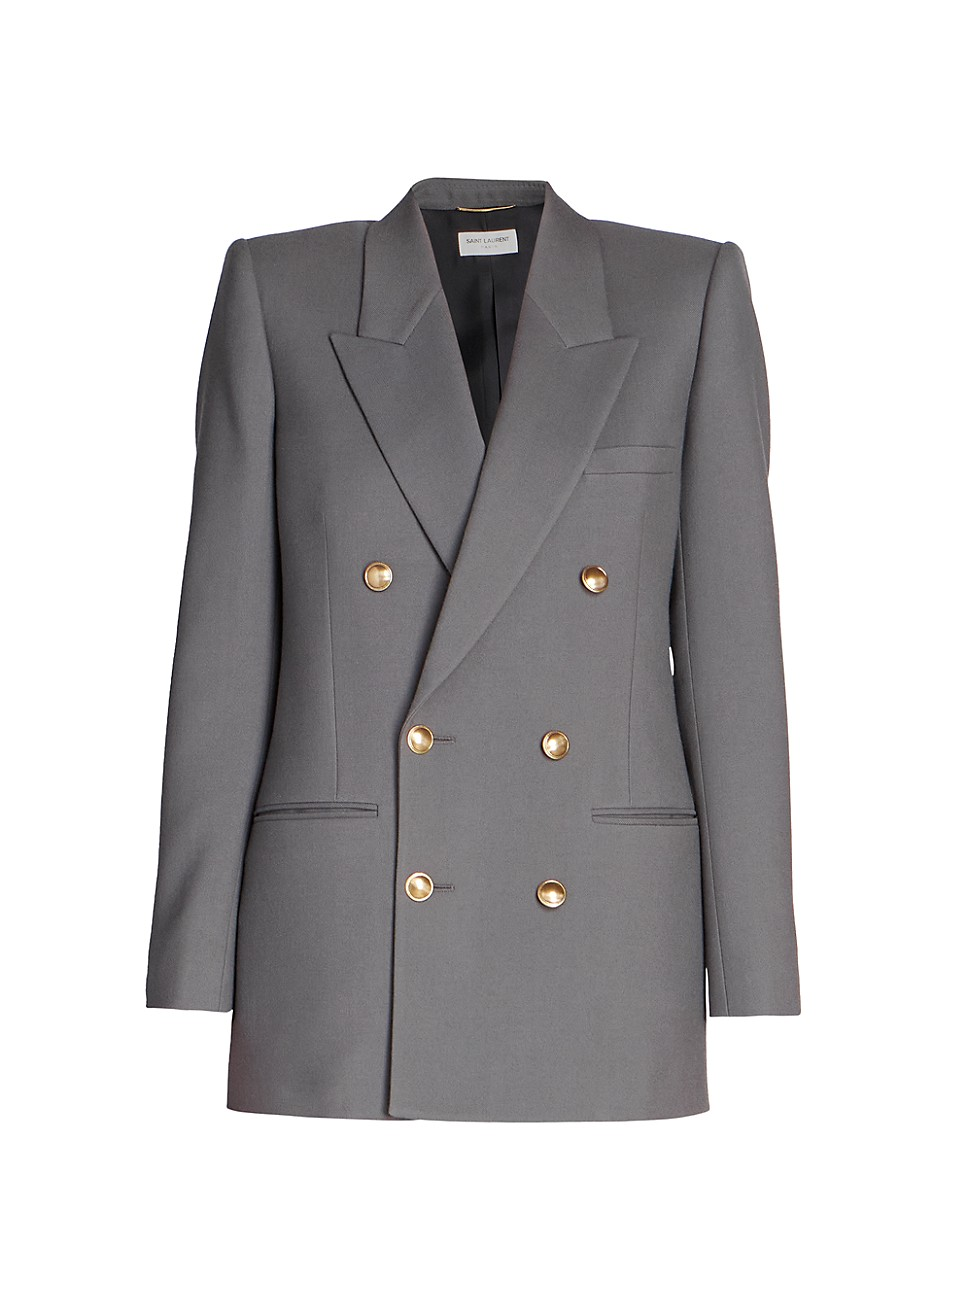 Saint Laurent WOMEN'S WOOL-BLEND DOUBLE BREASTED JACKET